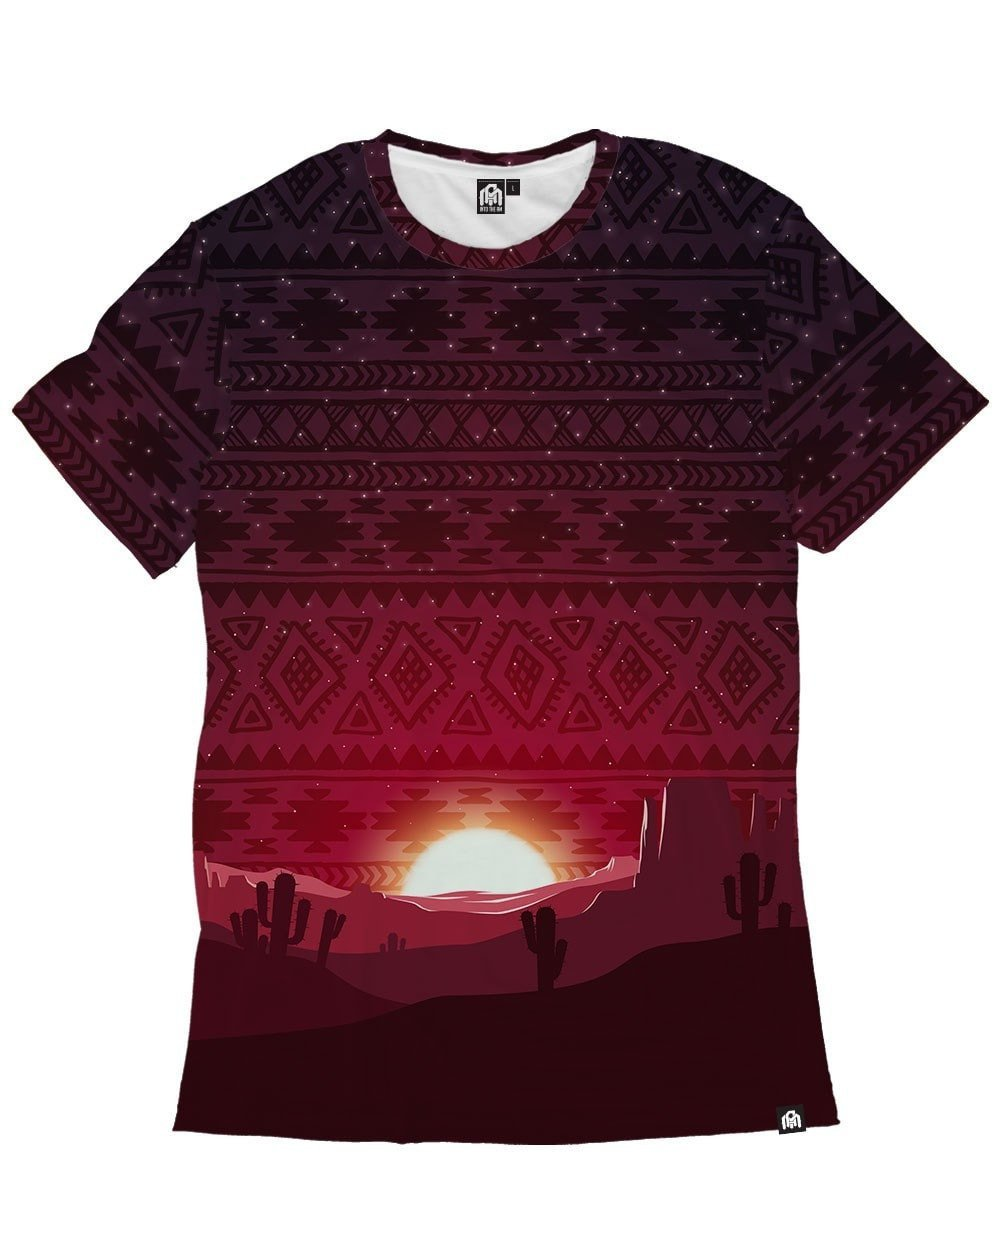 INTO THE AM Aztec Sunset Men's Casual Tee Shirt (Small)